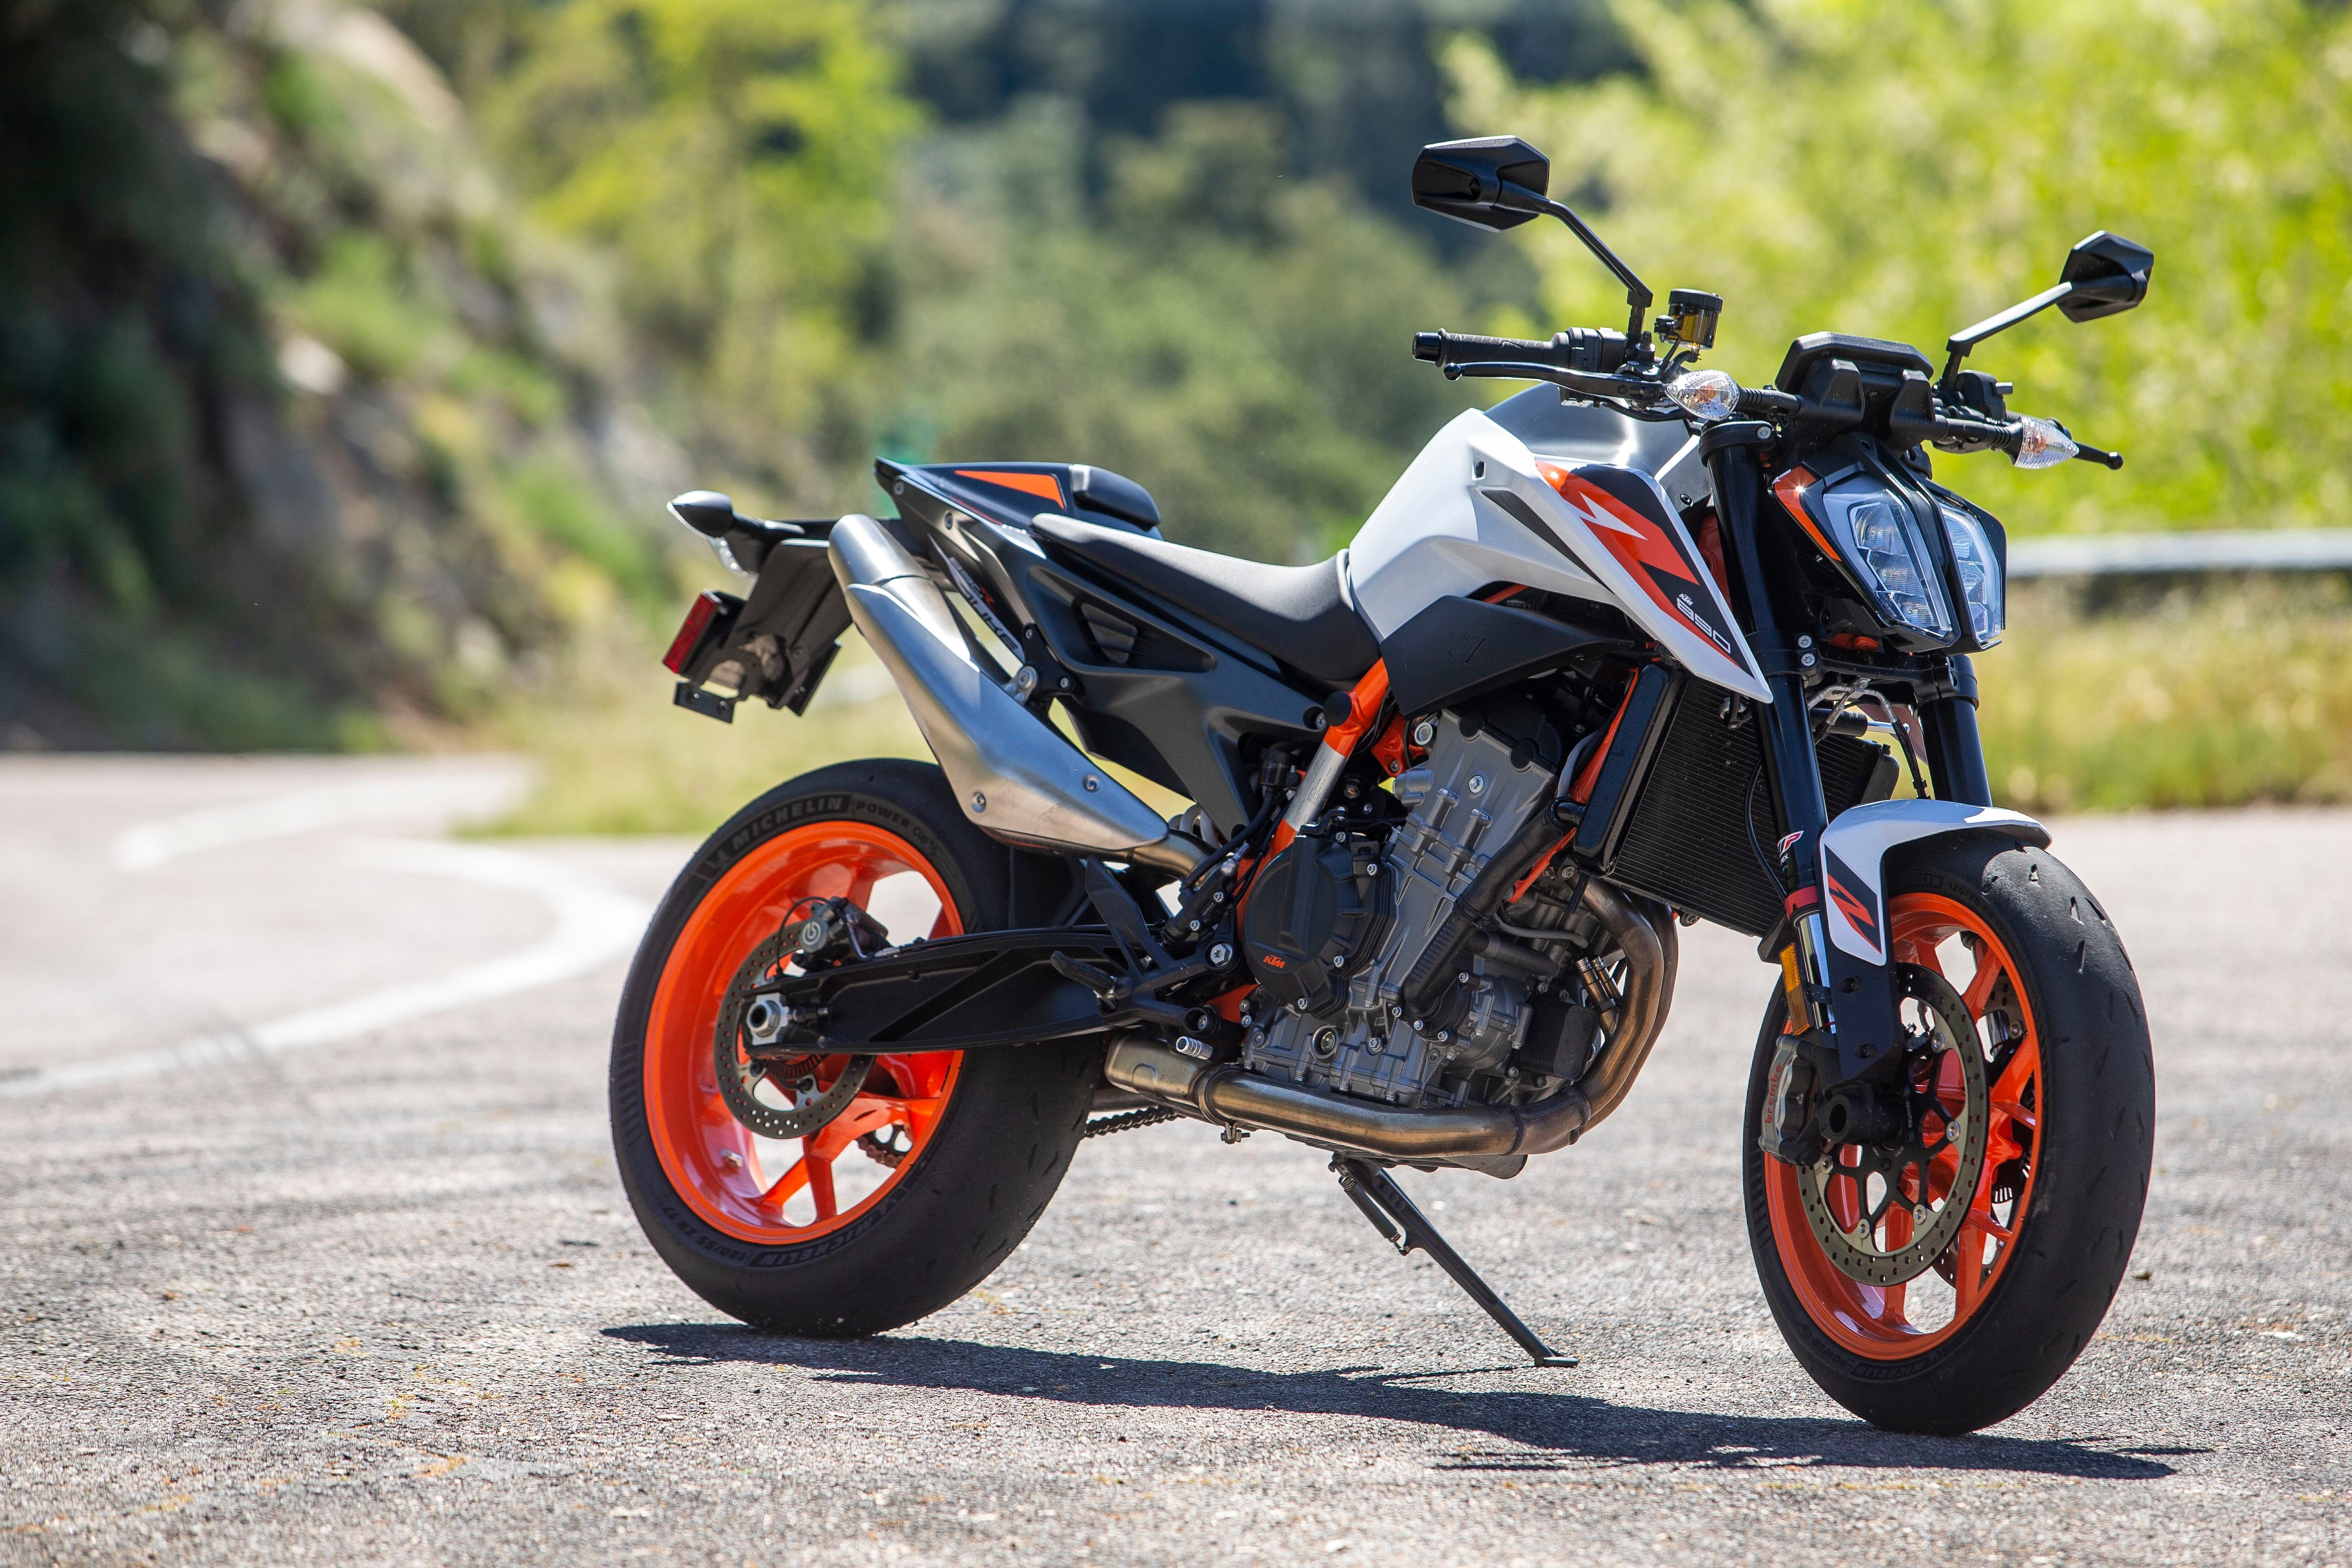 The 890 Duke R is impressive from any angle. Our only gripe is the mechanical function of its slipper clutch.